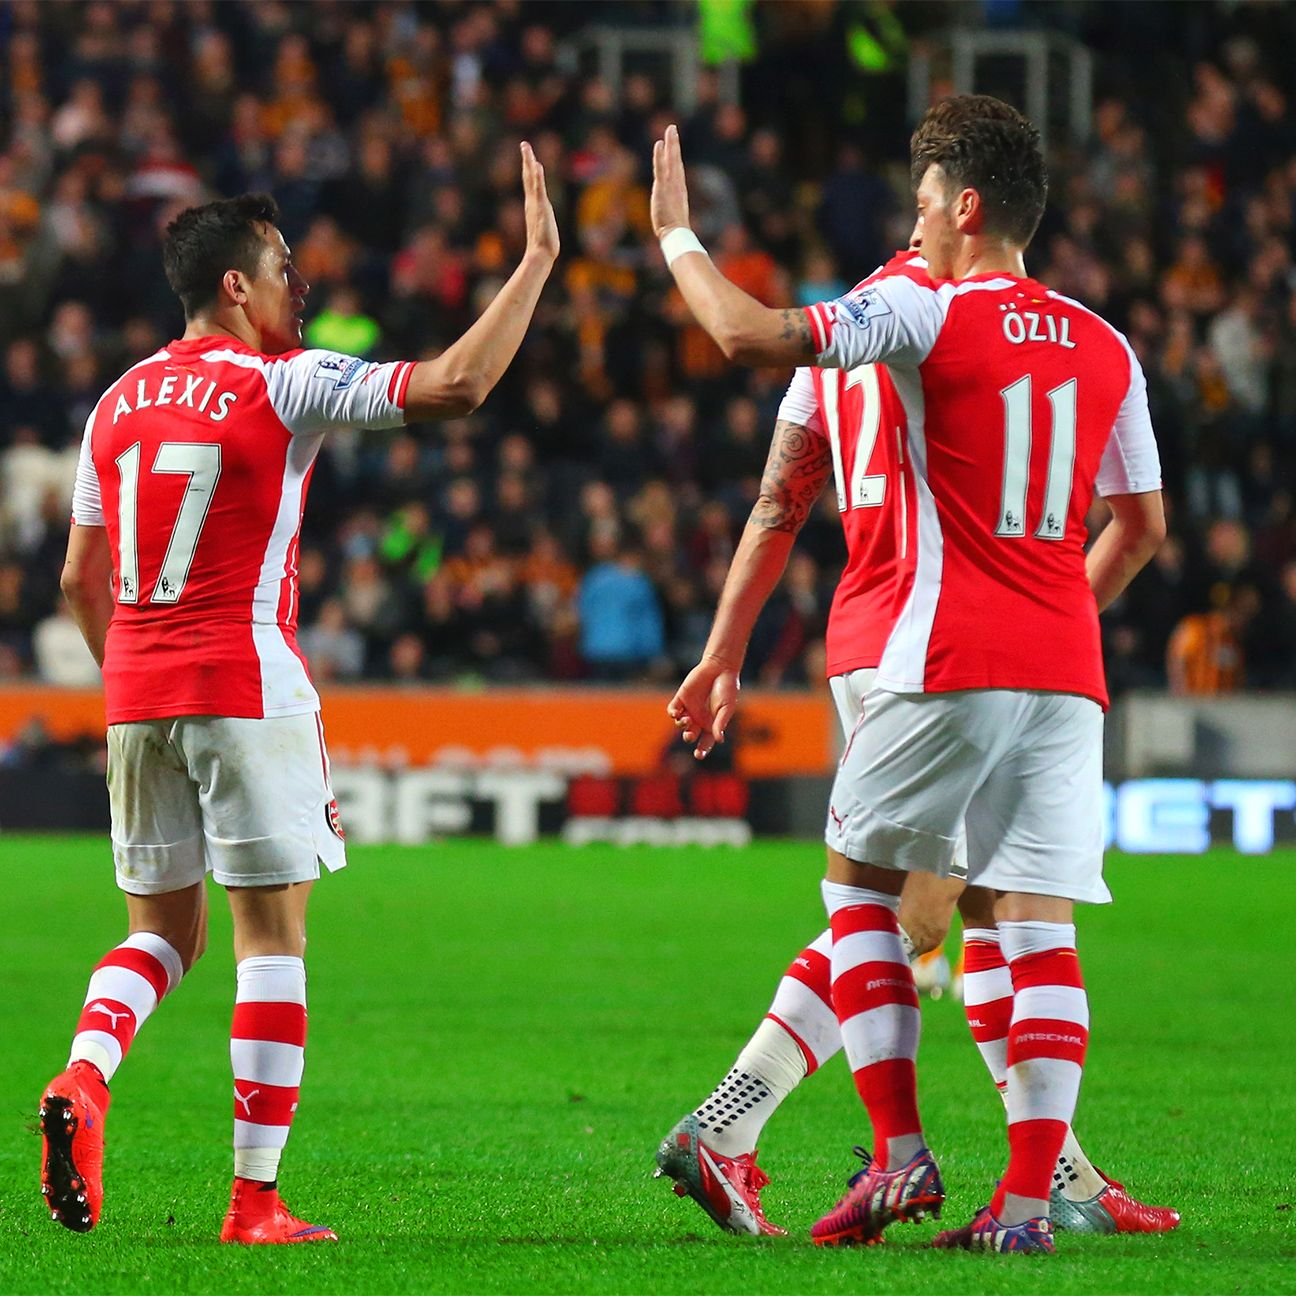 Arsenal supporters will hope to see Alexis Sanchez and Mesut Ozil celebrating many an Arsenal goal for years to come.